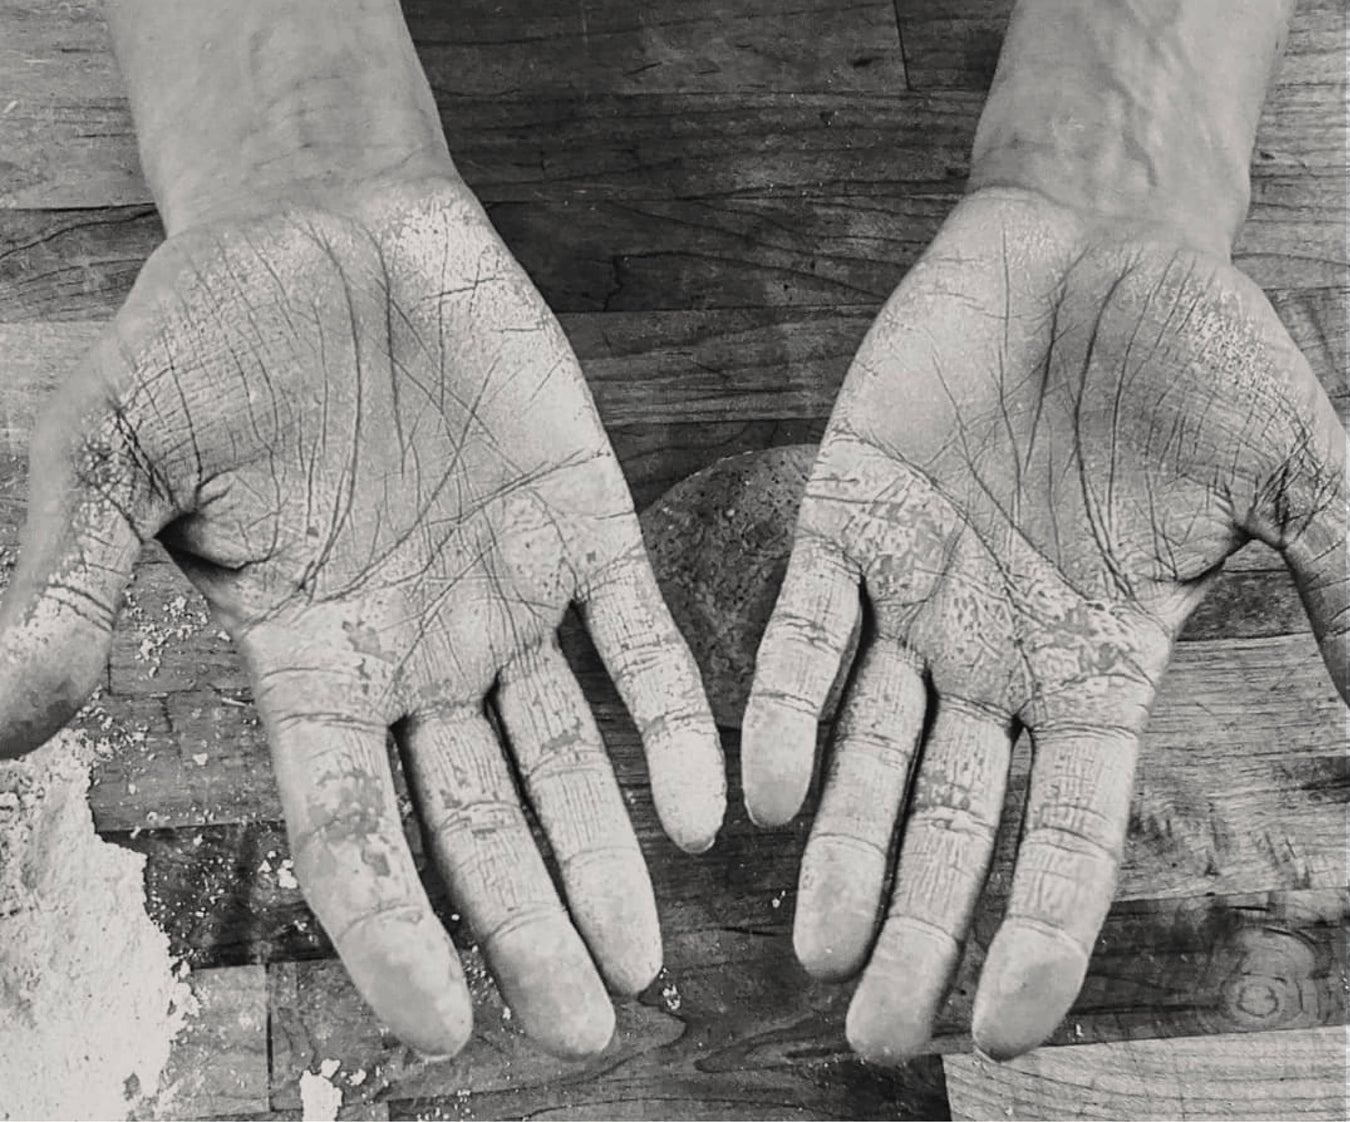 Image of bakers hands covered in flour from making bread